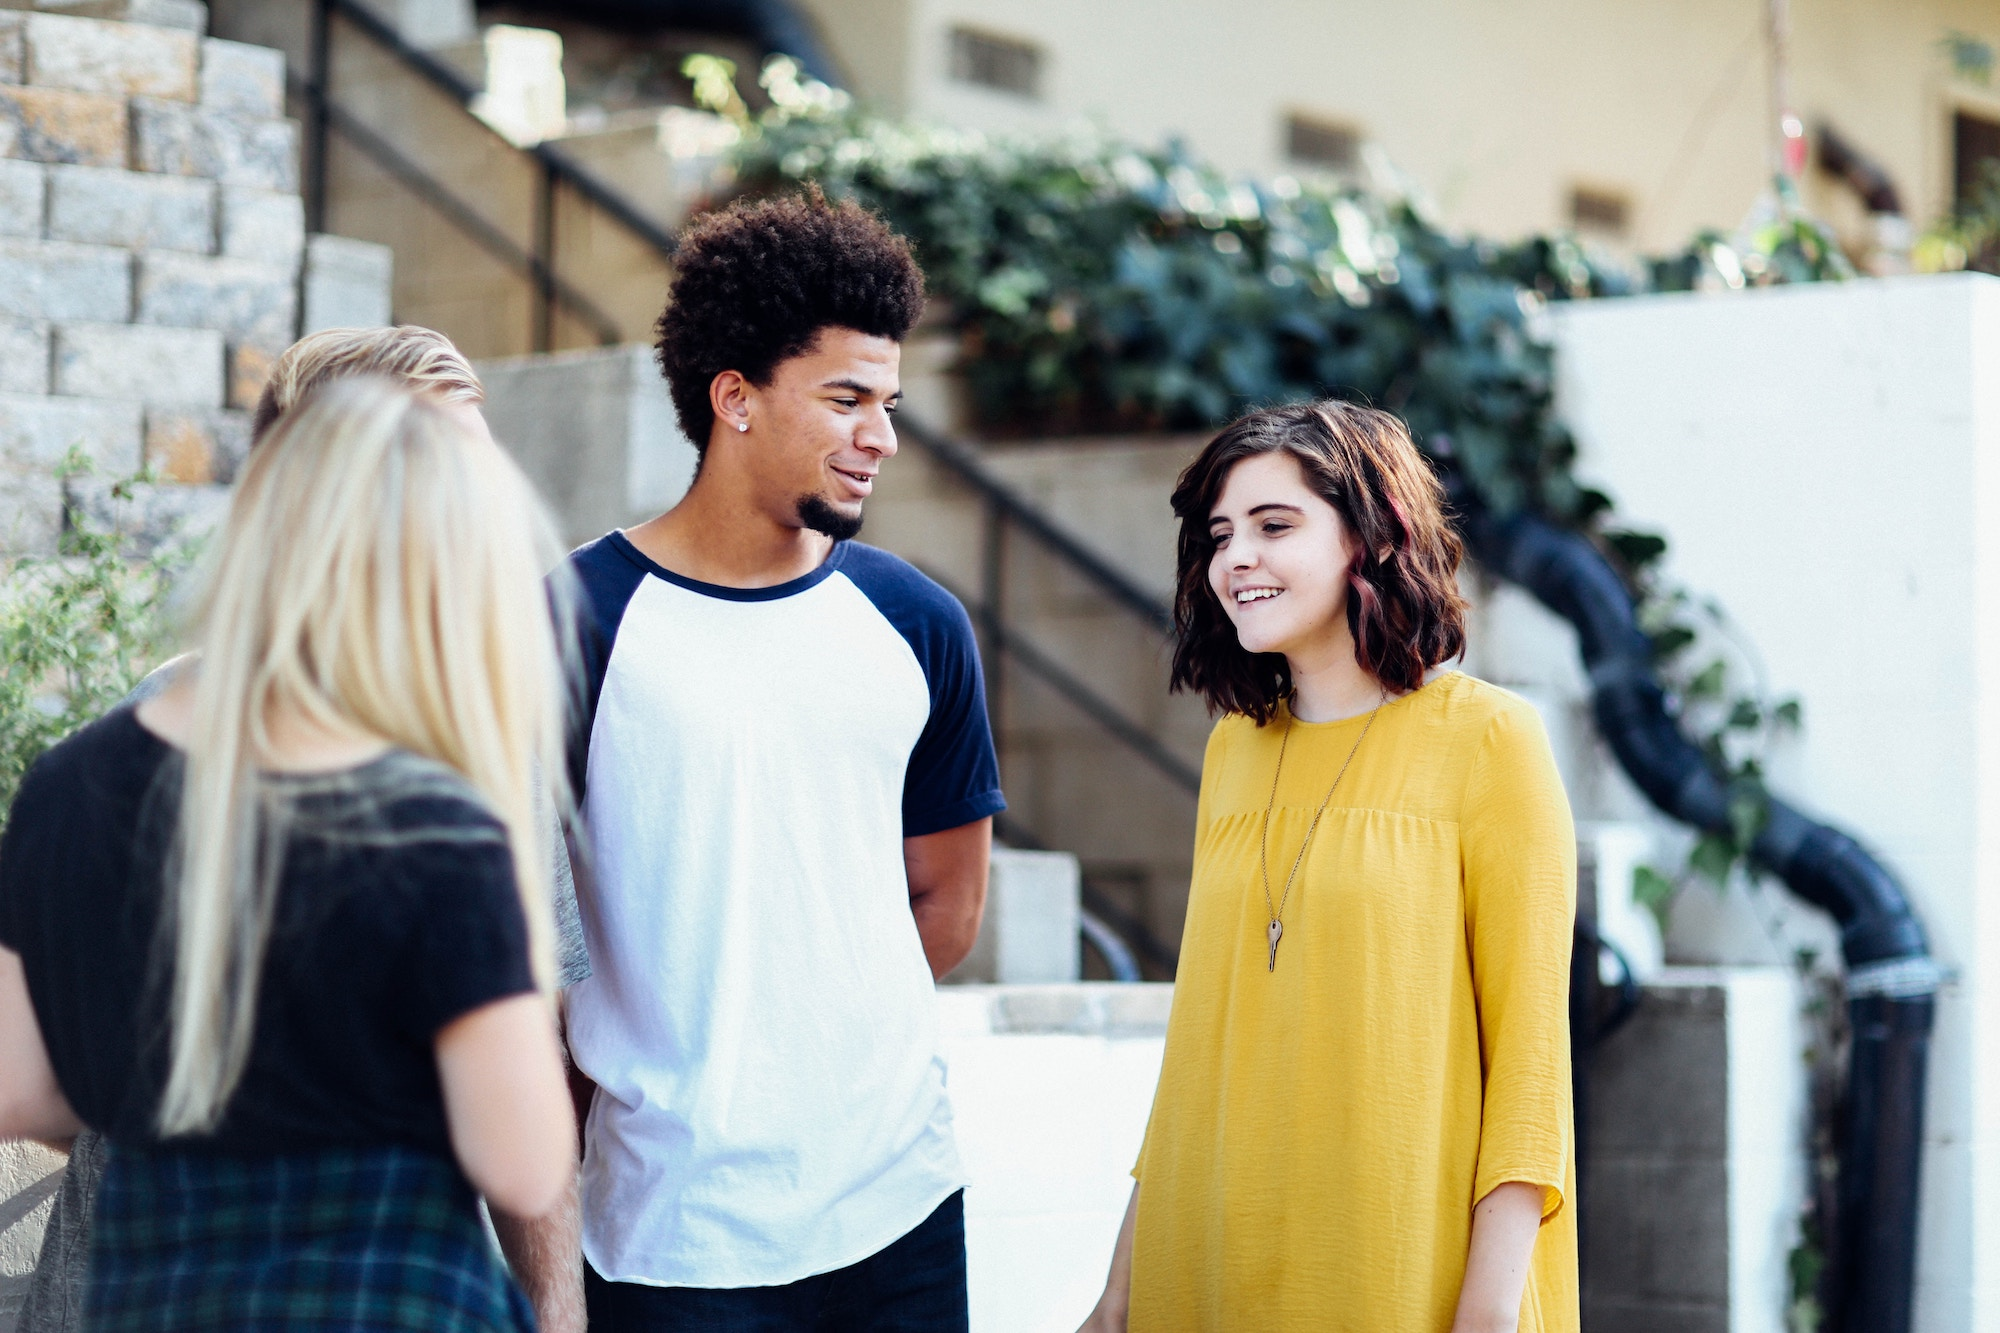 White girl wearing a yellow flowy dress and necklace smiles while talking to a black man wearing a blue and white baseball t-shirt while a blonde-haired woman has her back turned to the camera